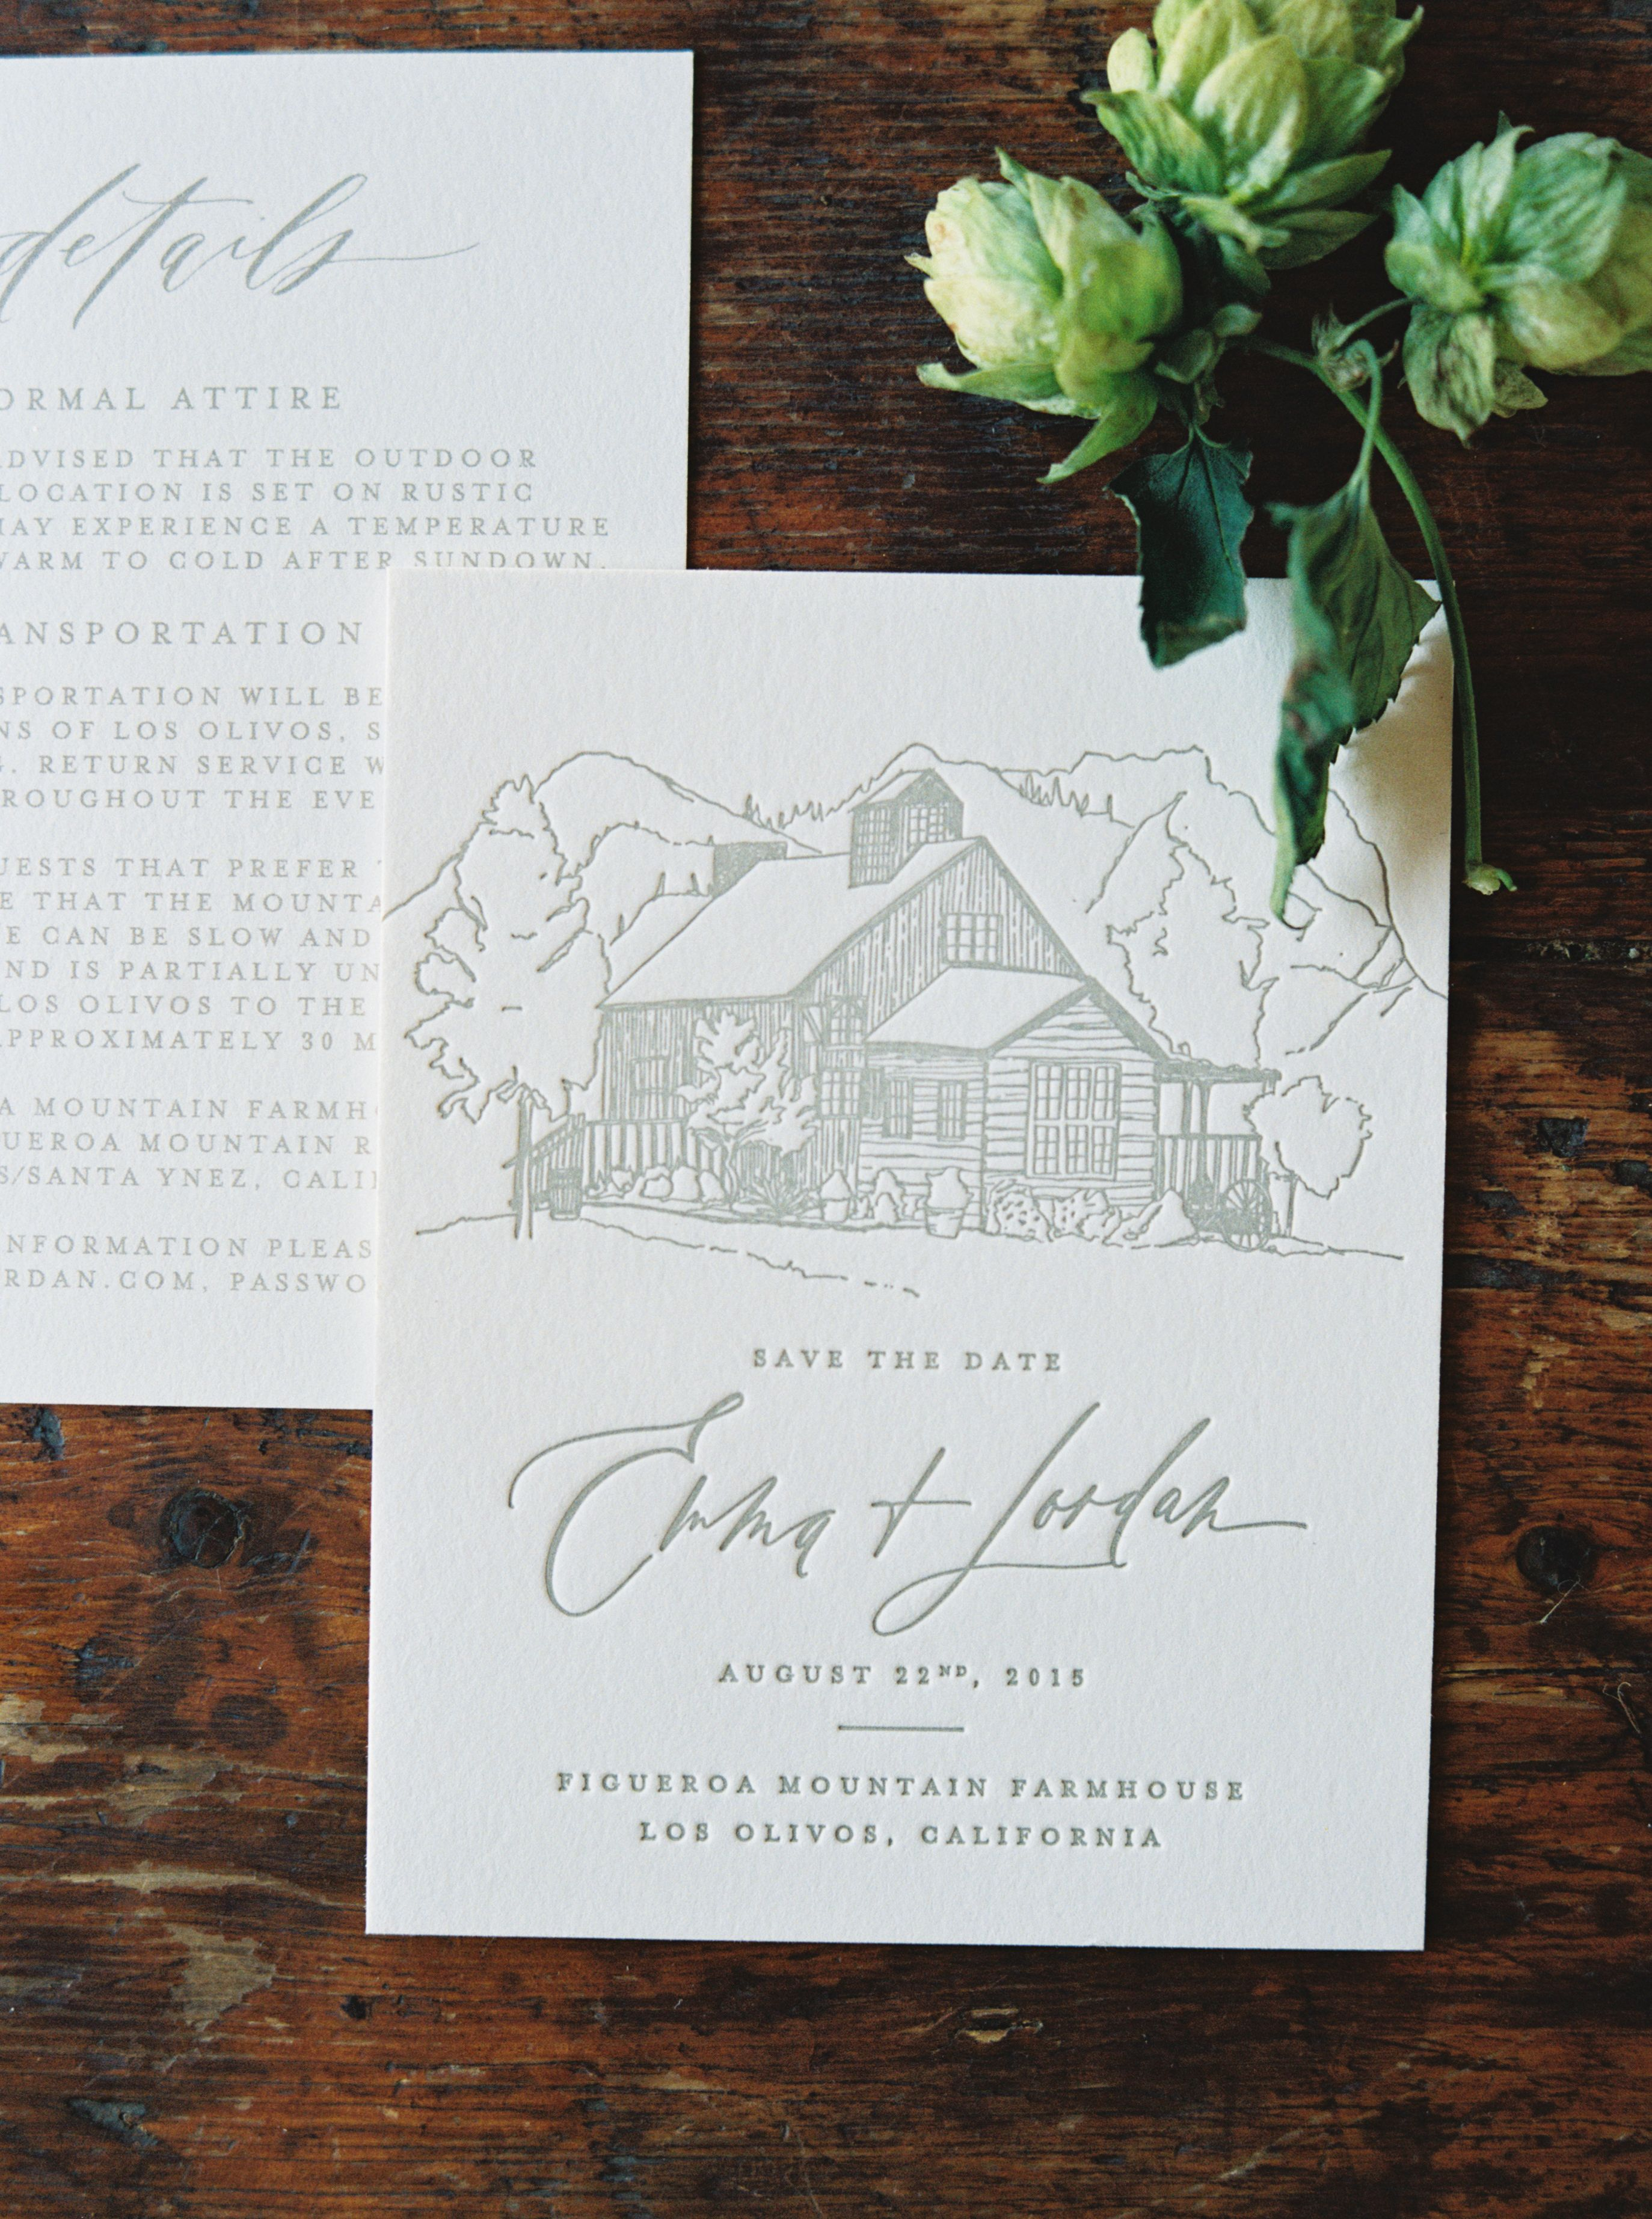 inviting for wedding words%0A Calligraphy and Design by  Written Word Calligraphy    Figueroa Mountain  Farmhouse    Erich